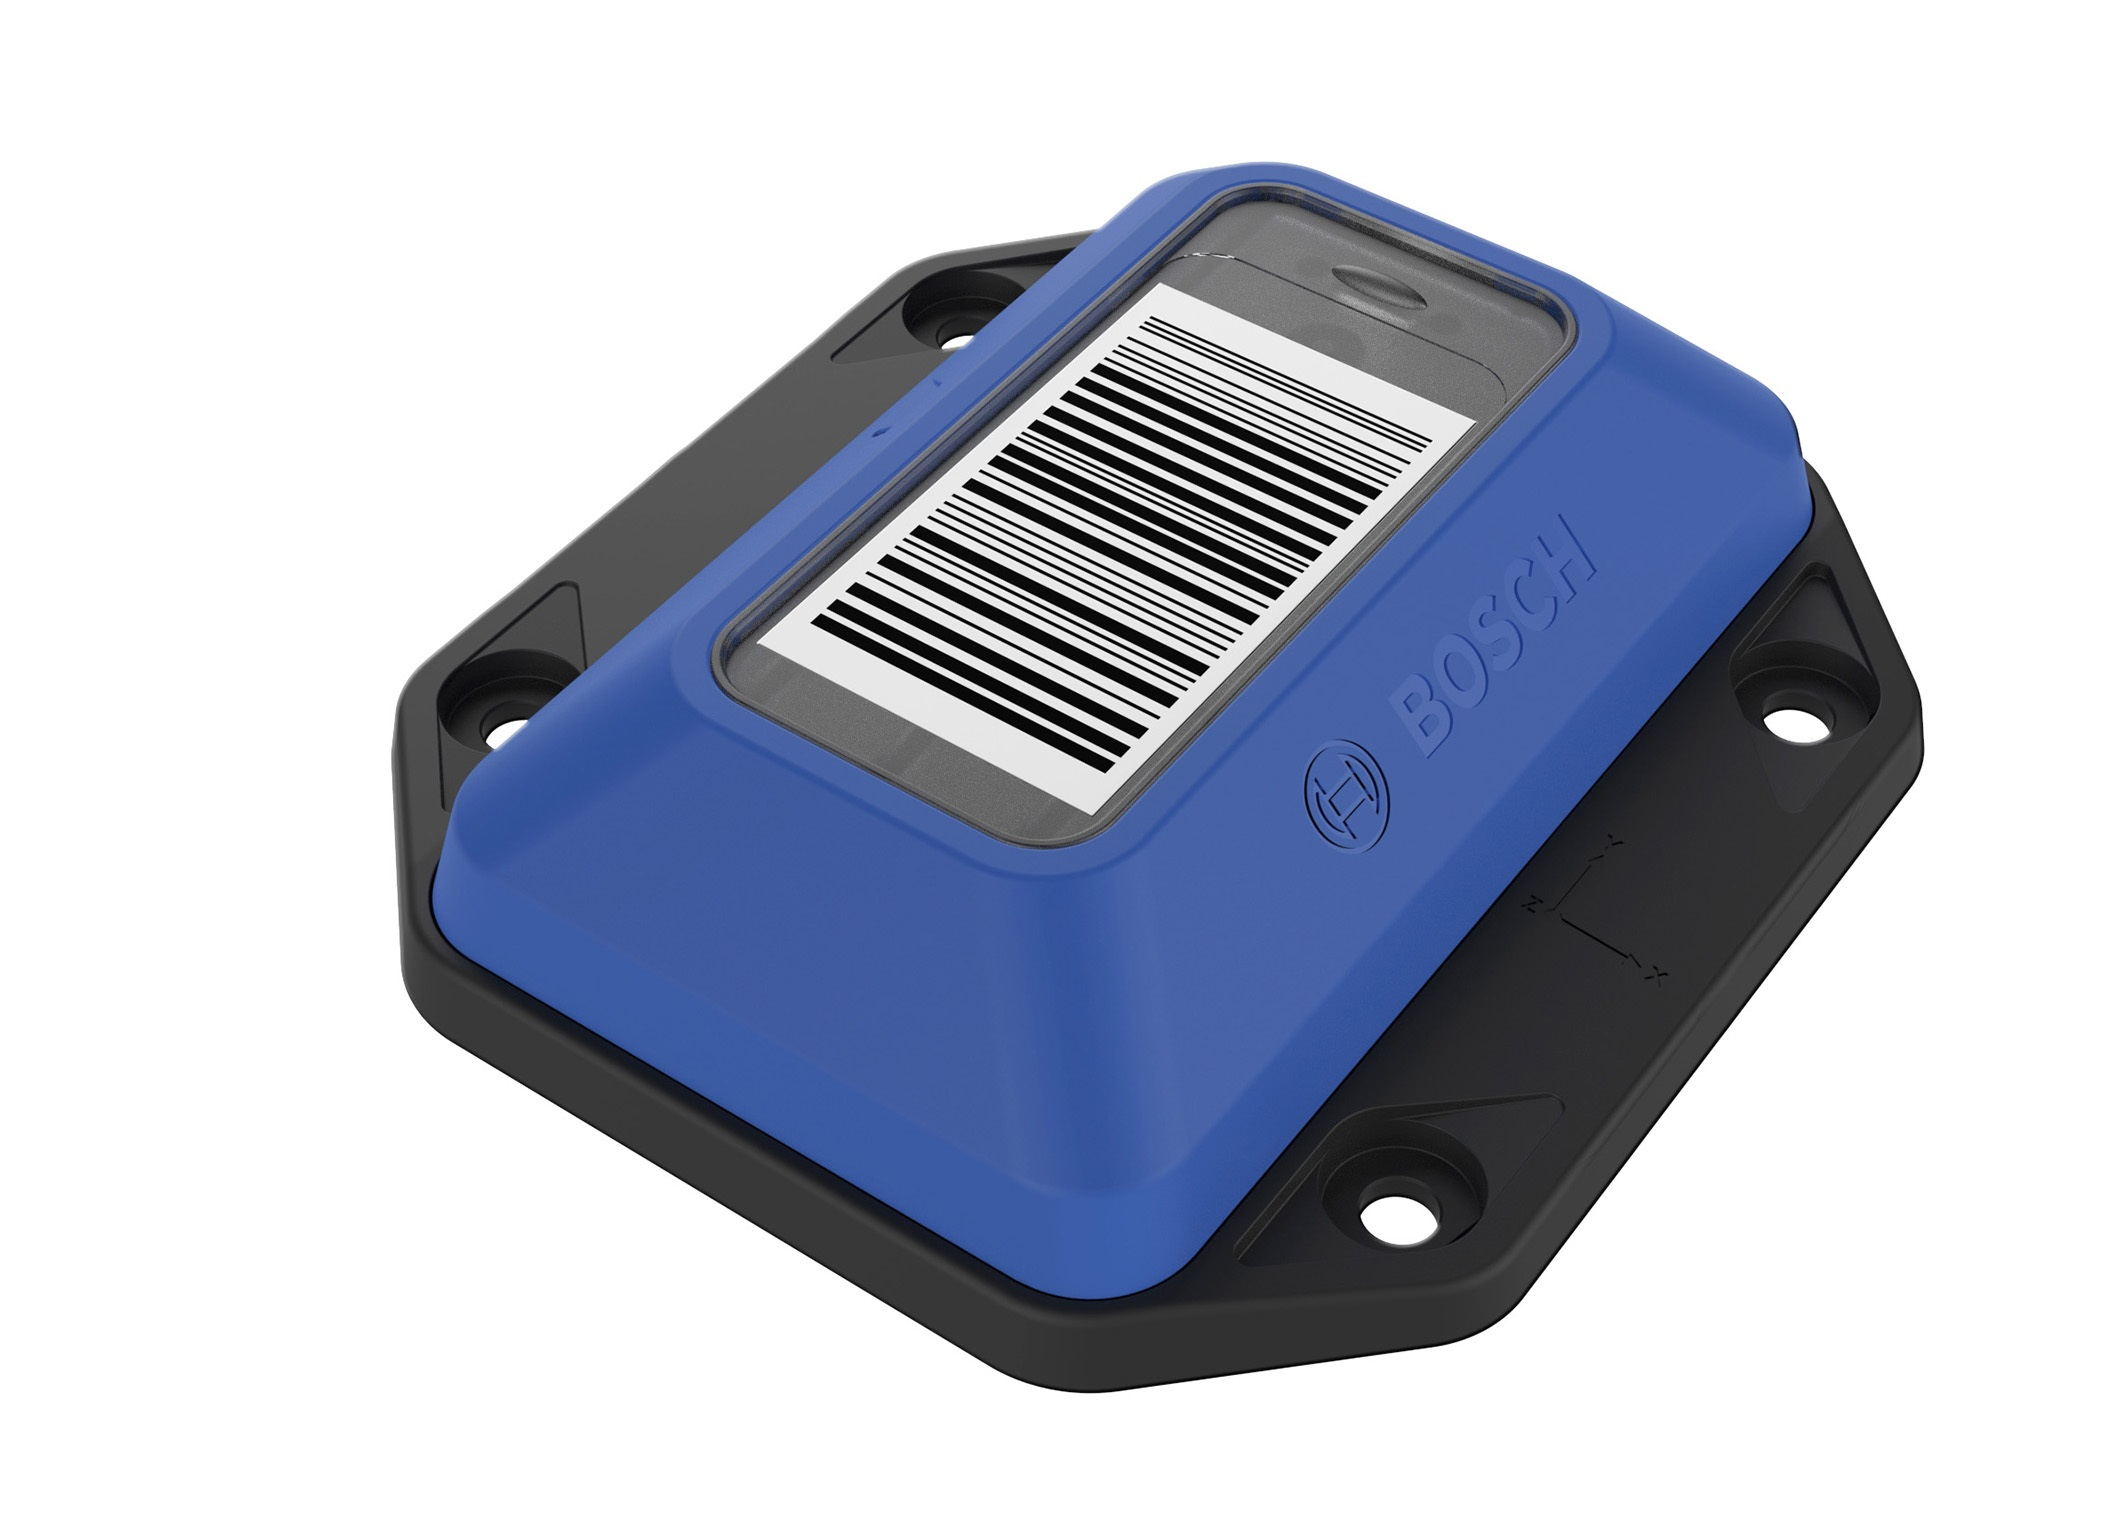 Contra and Bosch Connected Devices and Solutions  have launched the Transport Data Logger at Gustus Exibition